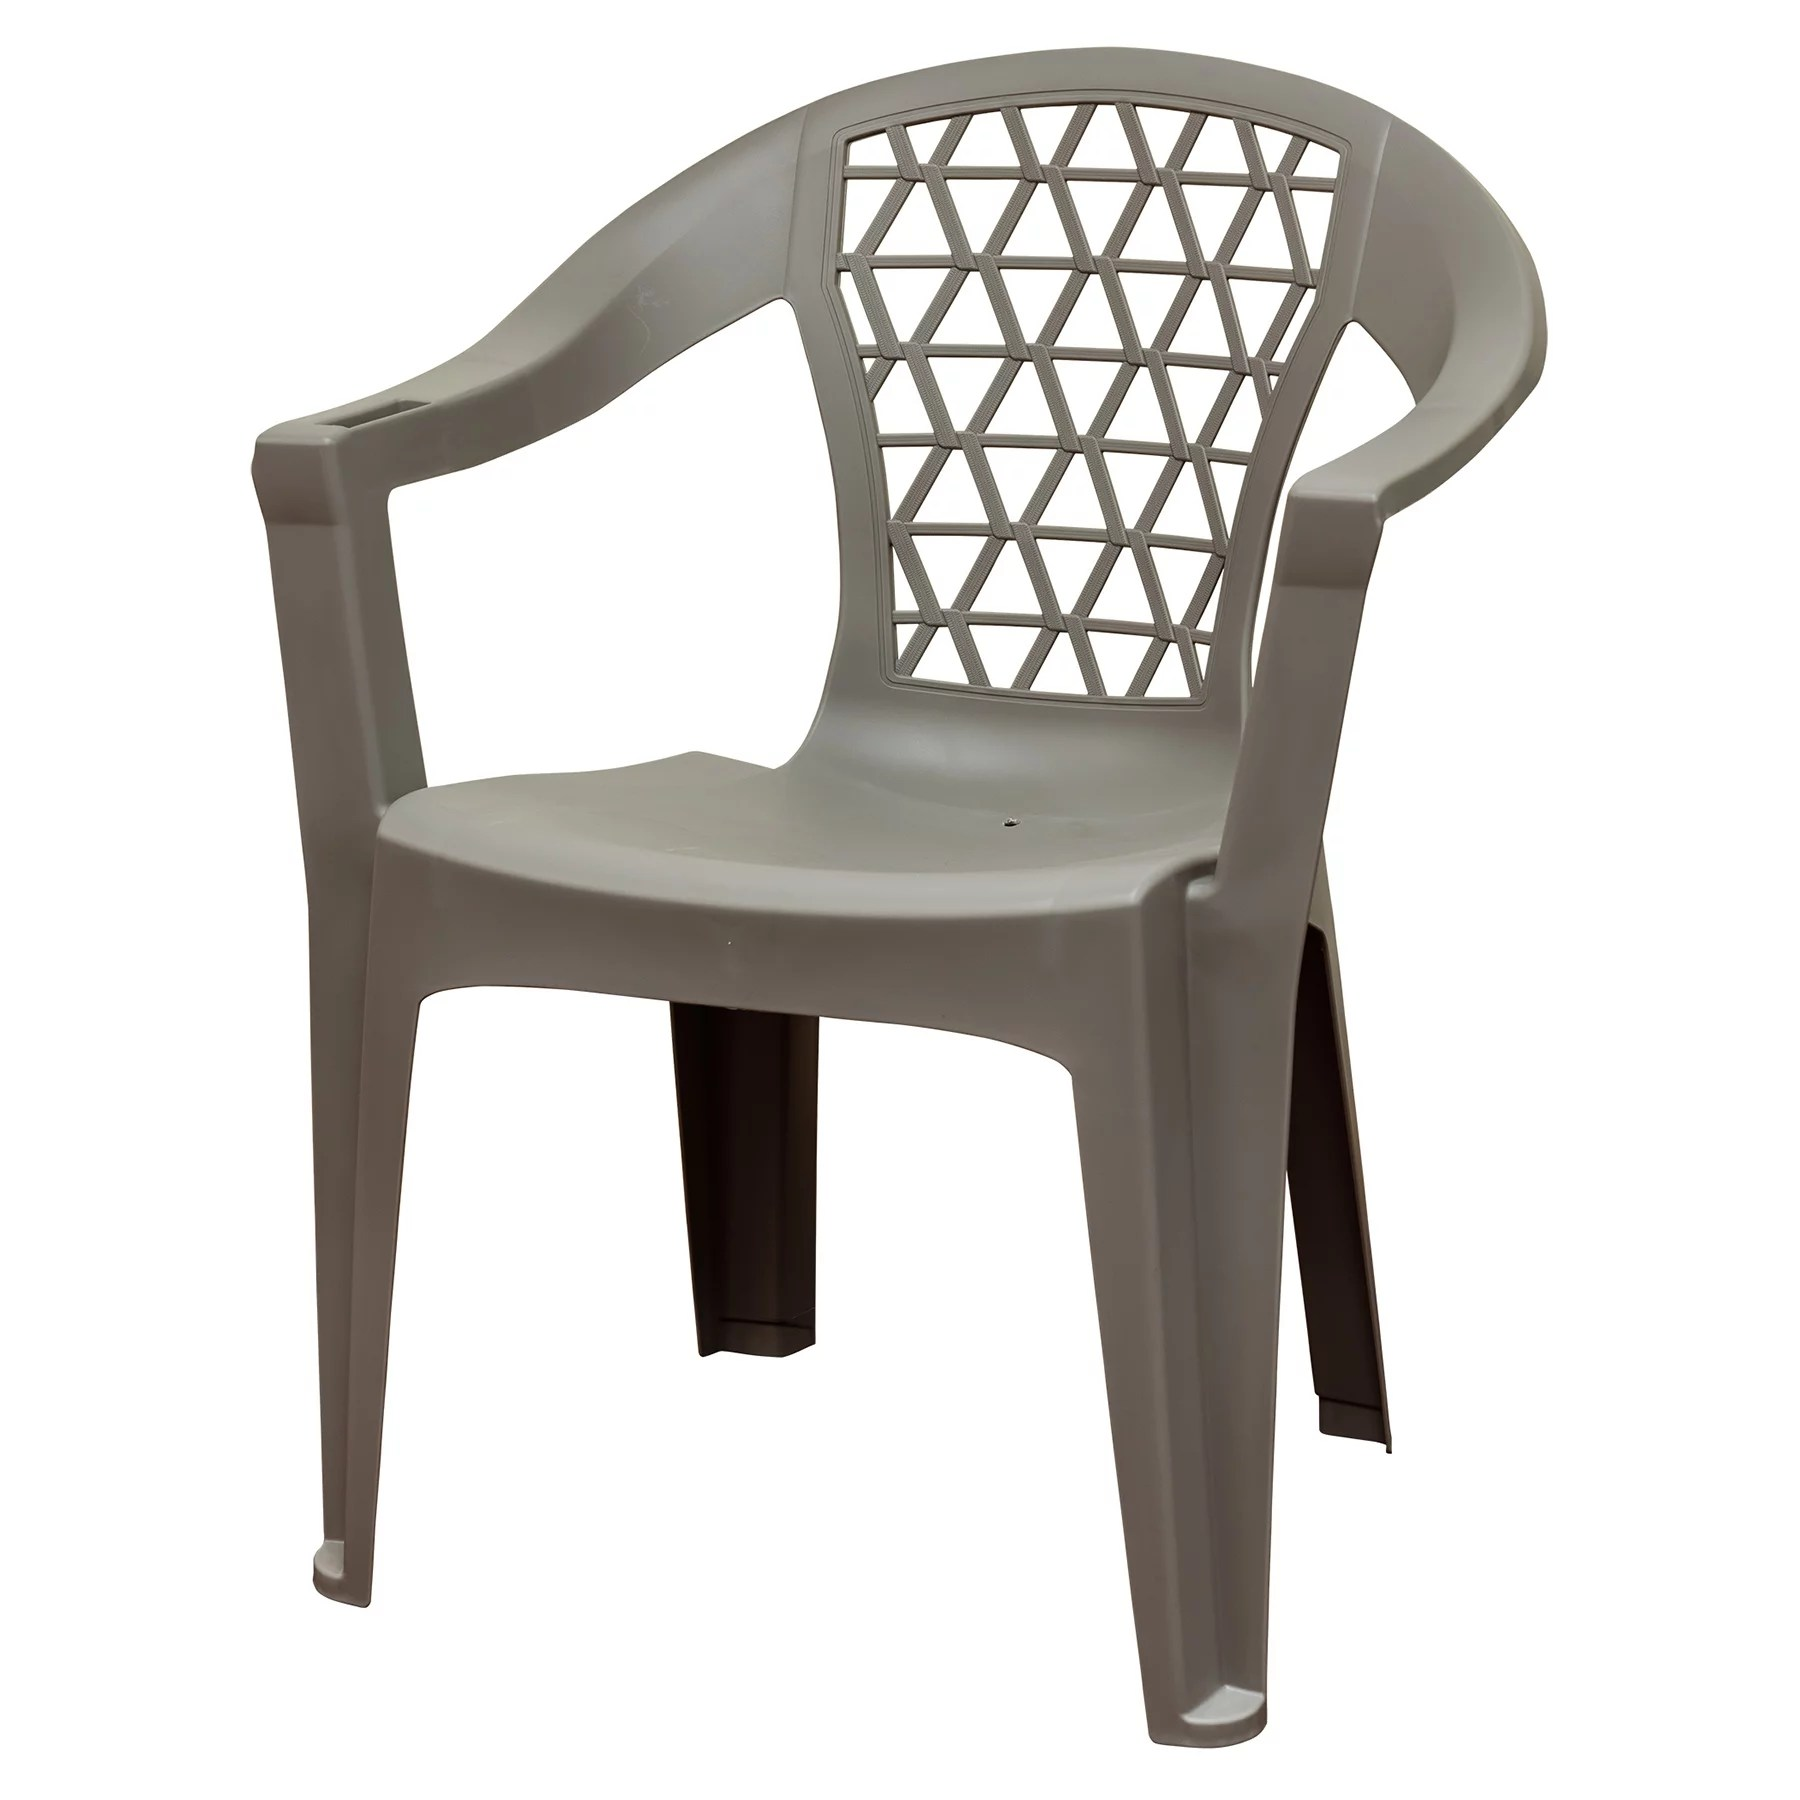 adams penza outdoor resin stack chair with phone holder plastic patio furniture gray